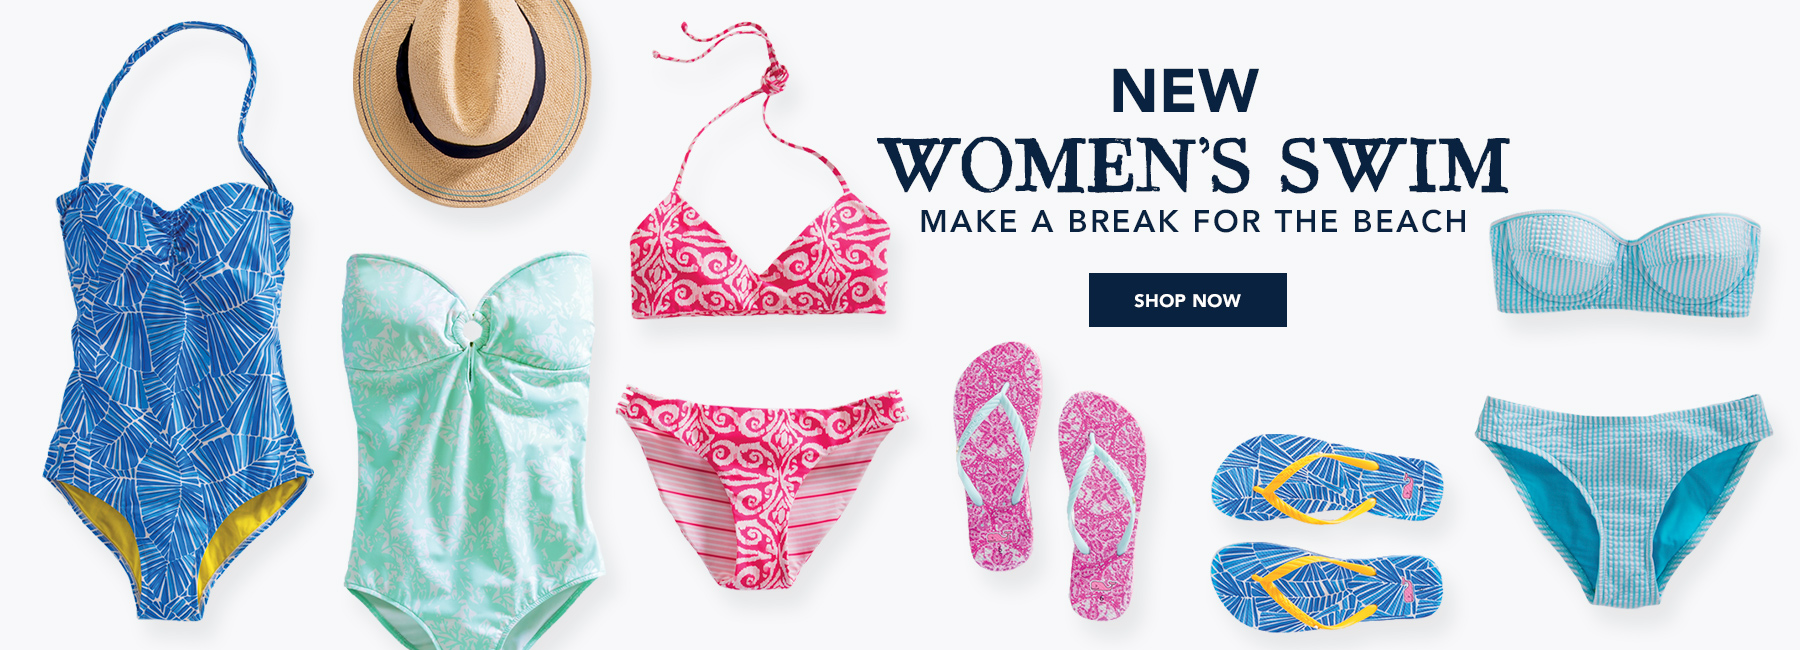 Shop women's swim.